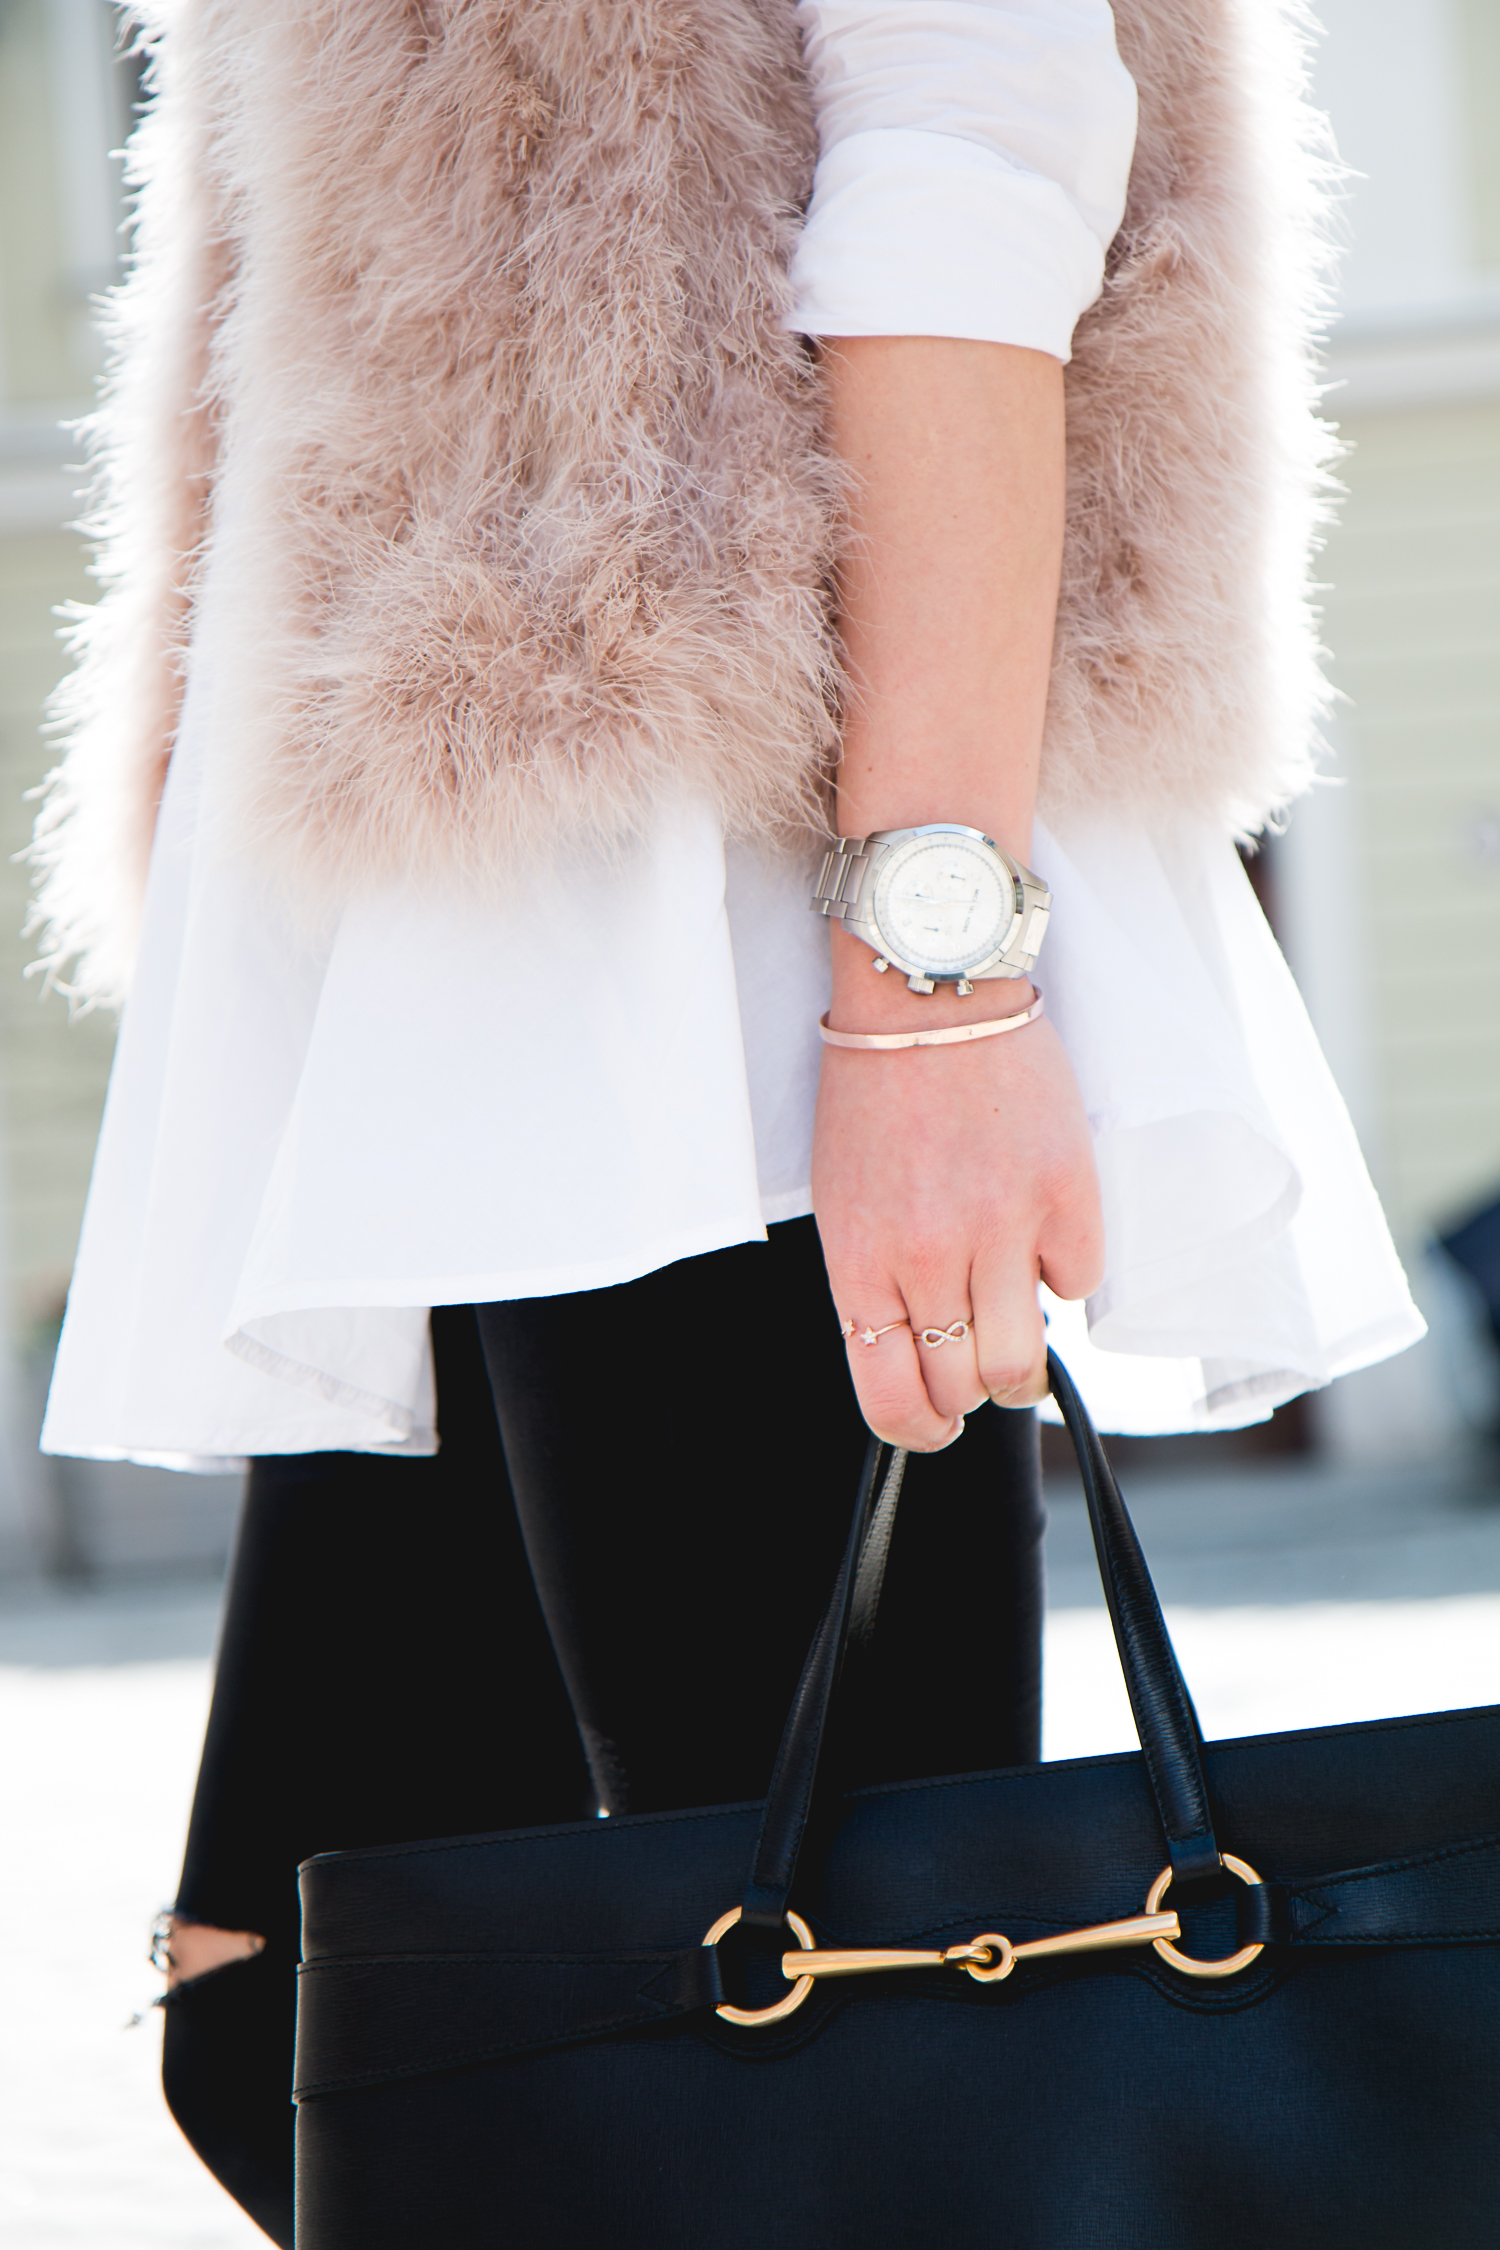 Fluffy-Vest-Gucci-Bag-8